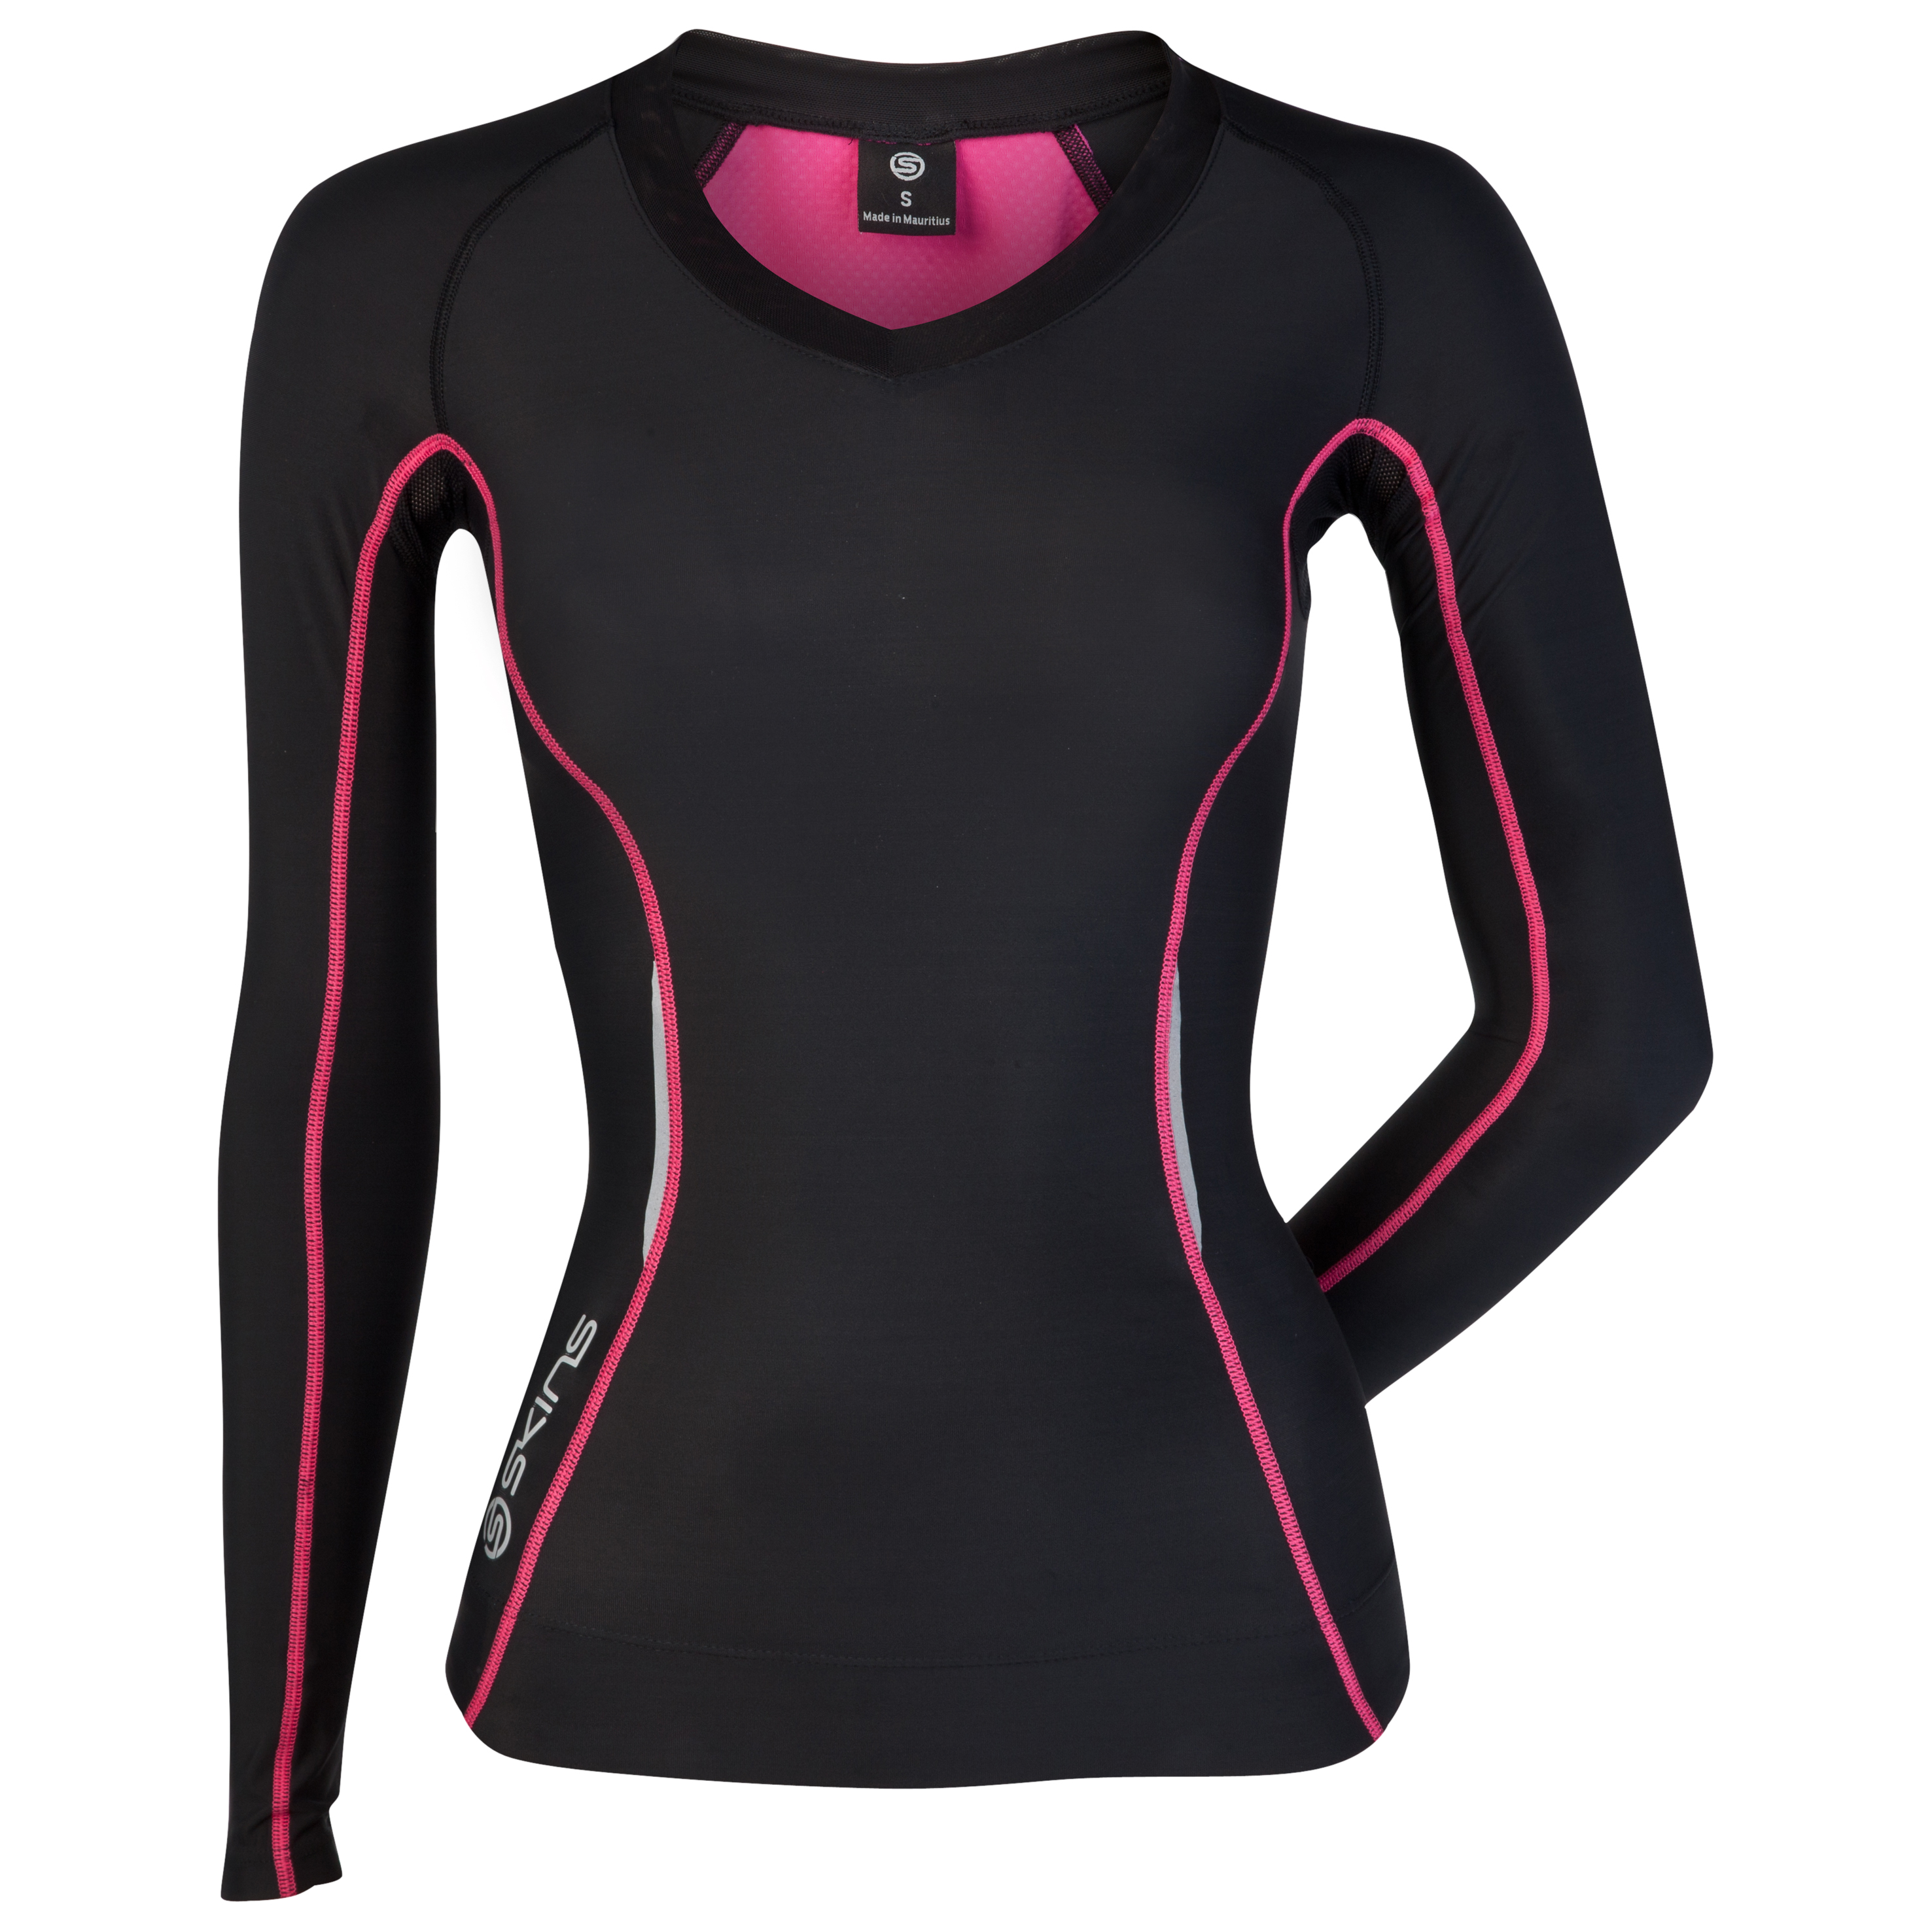 Skins A200 Long Sleeve Top - Black/Pink - Womens